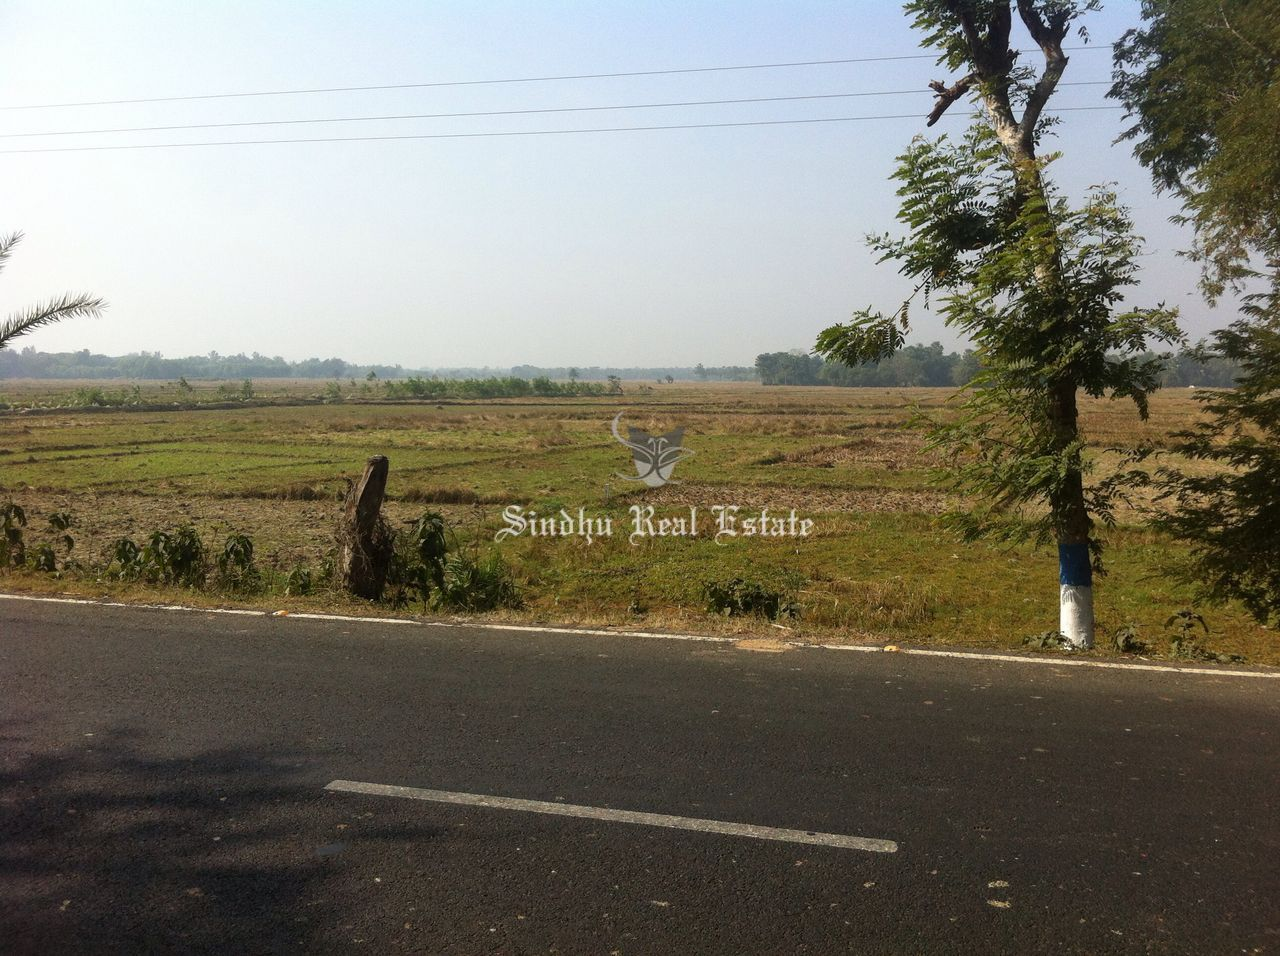 Commercial Land is Available For Sale at Bardhaman